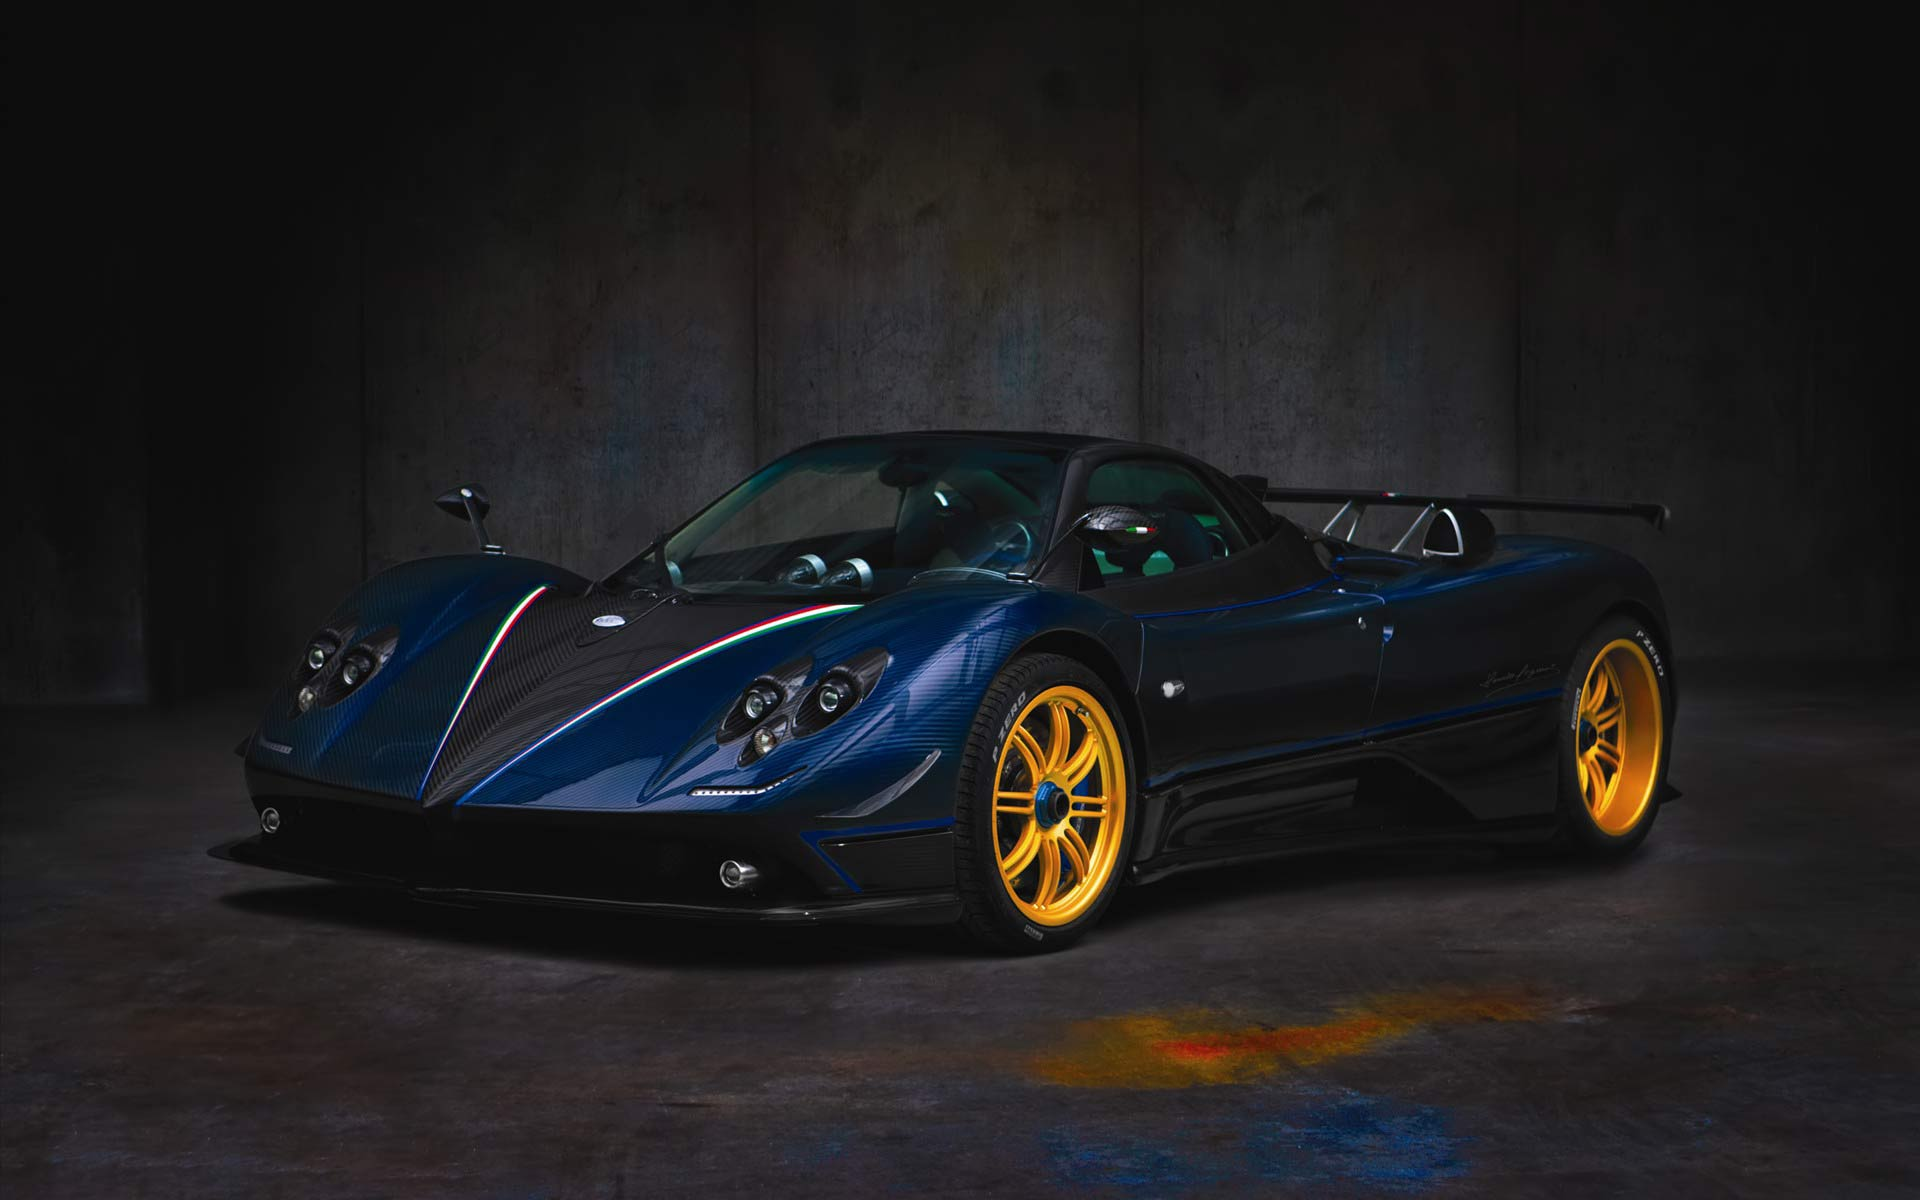 Hd Supercars Wallpapers Blue Pagani Zonda Supercar Hd Wallpaper Cool 1920x1200